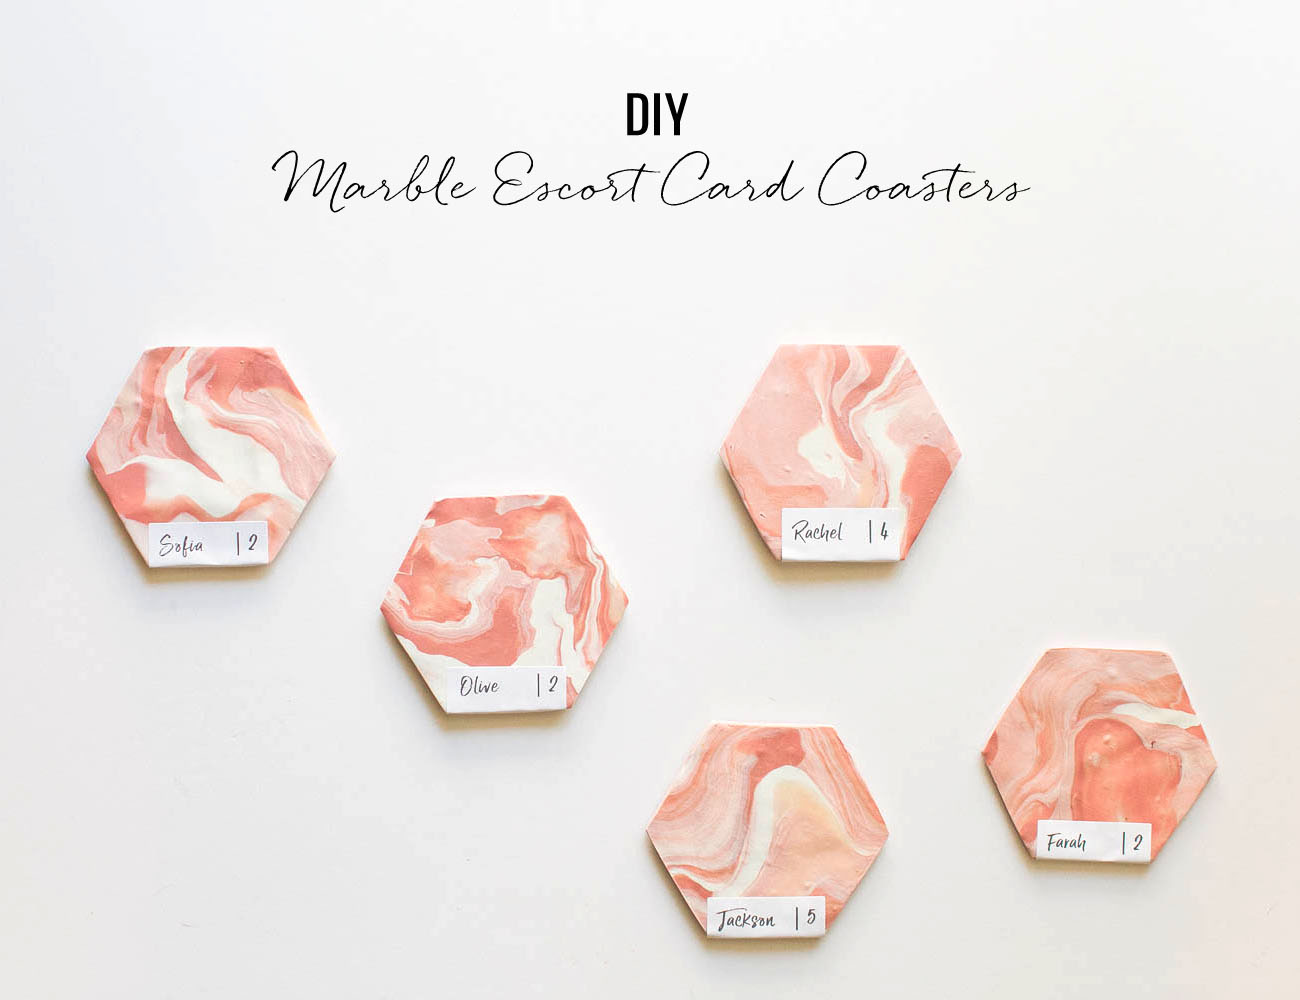 DIY Marble Escort Card Coasters